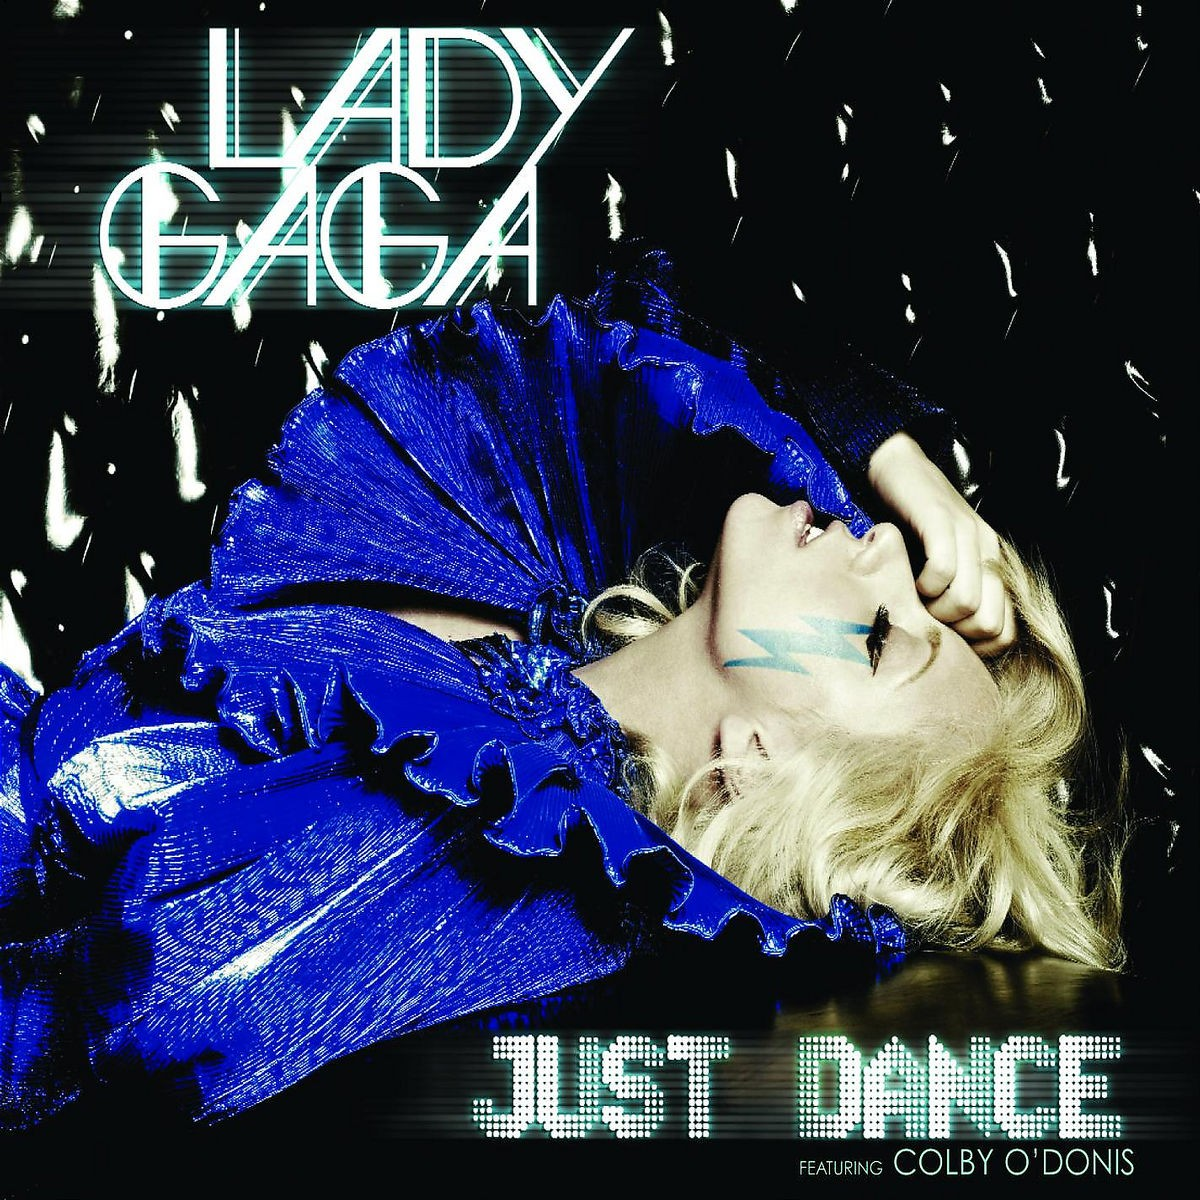 http://3.bp.blogspot.com/-SXZcBSZWFtw/UKAGoggYFyI/AAAAAAAANzo/ZMbHFV1kLs8/s1600/Lady-GaGa-Just-Dance-Official-Single-Cover+.+fashionagain80s.blogspot.jpg